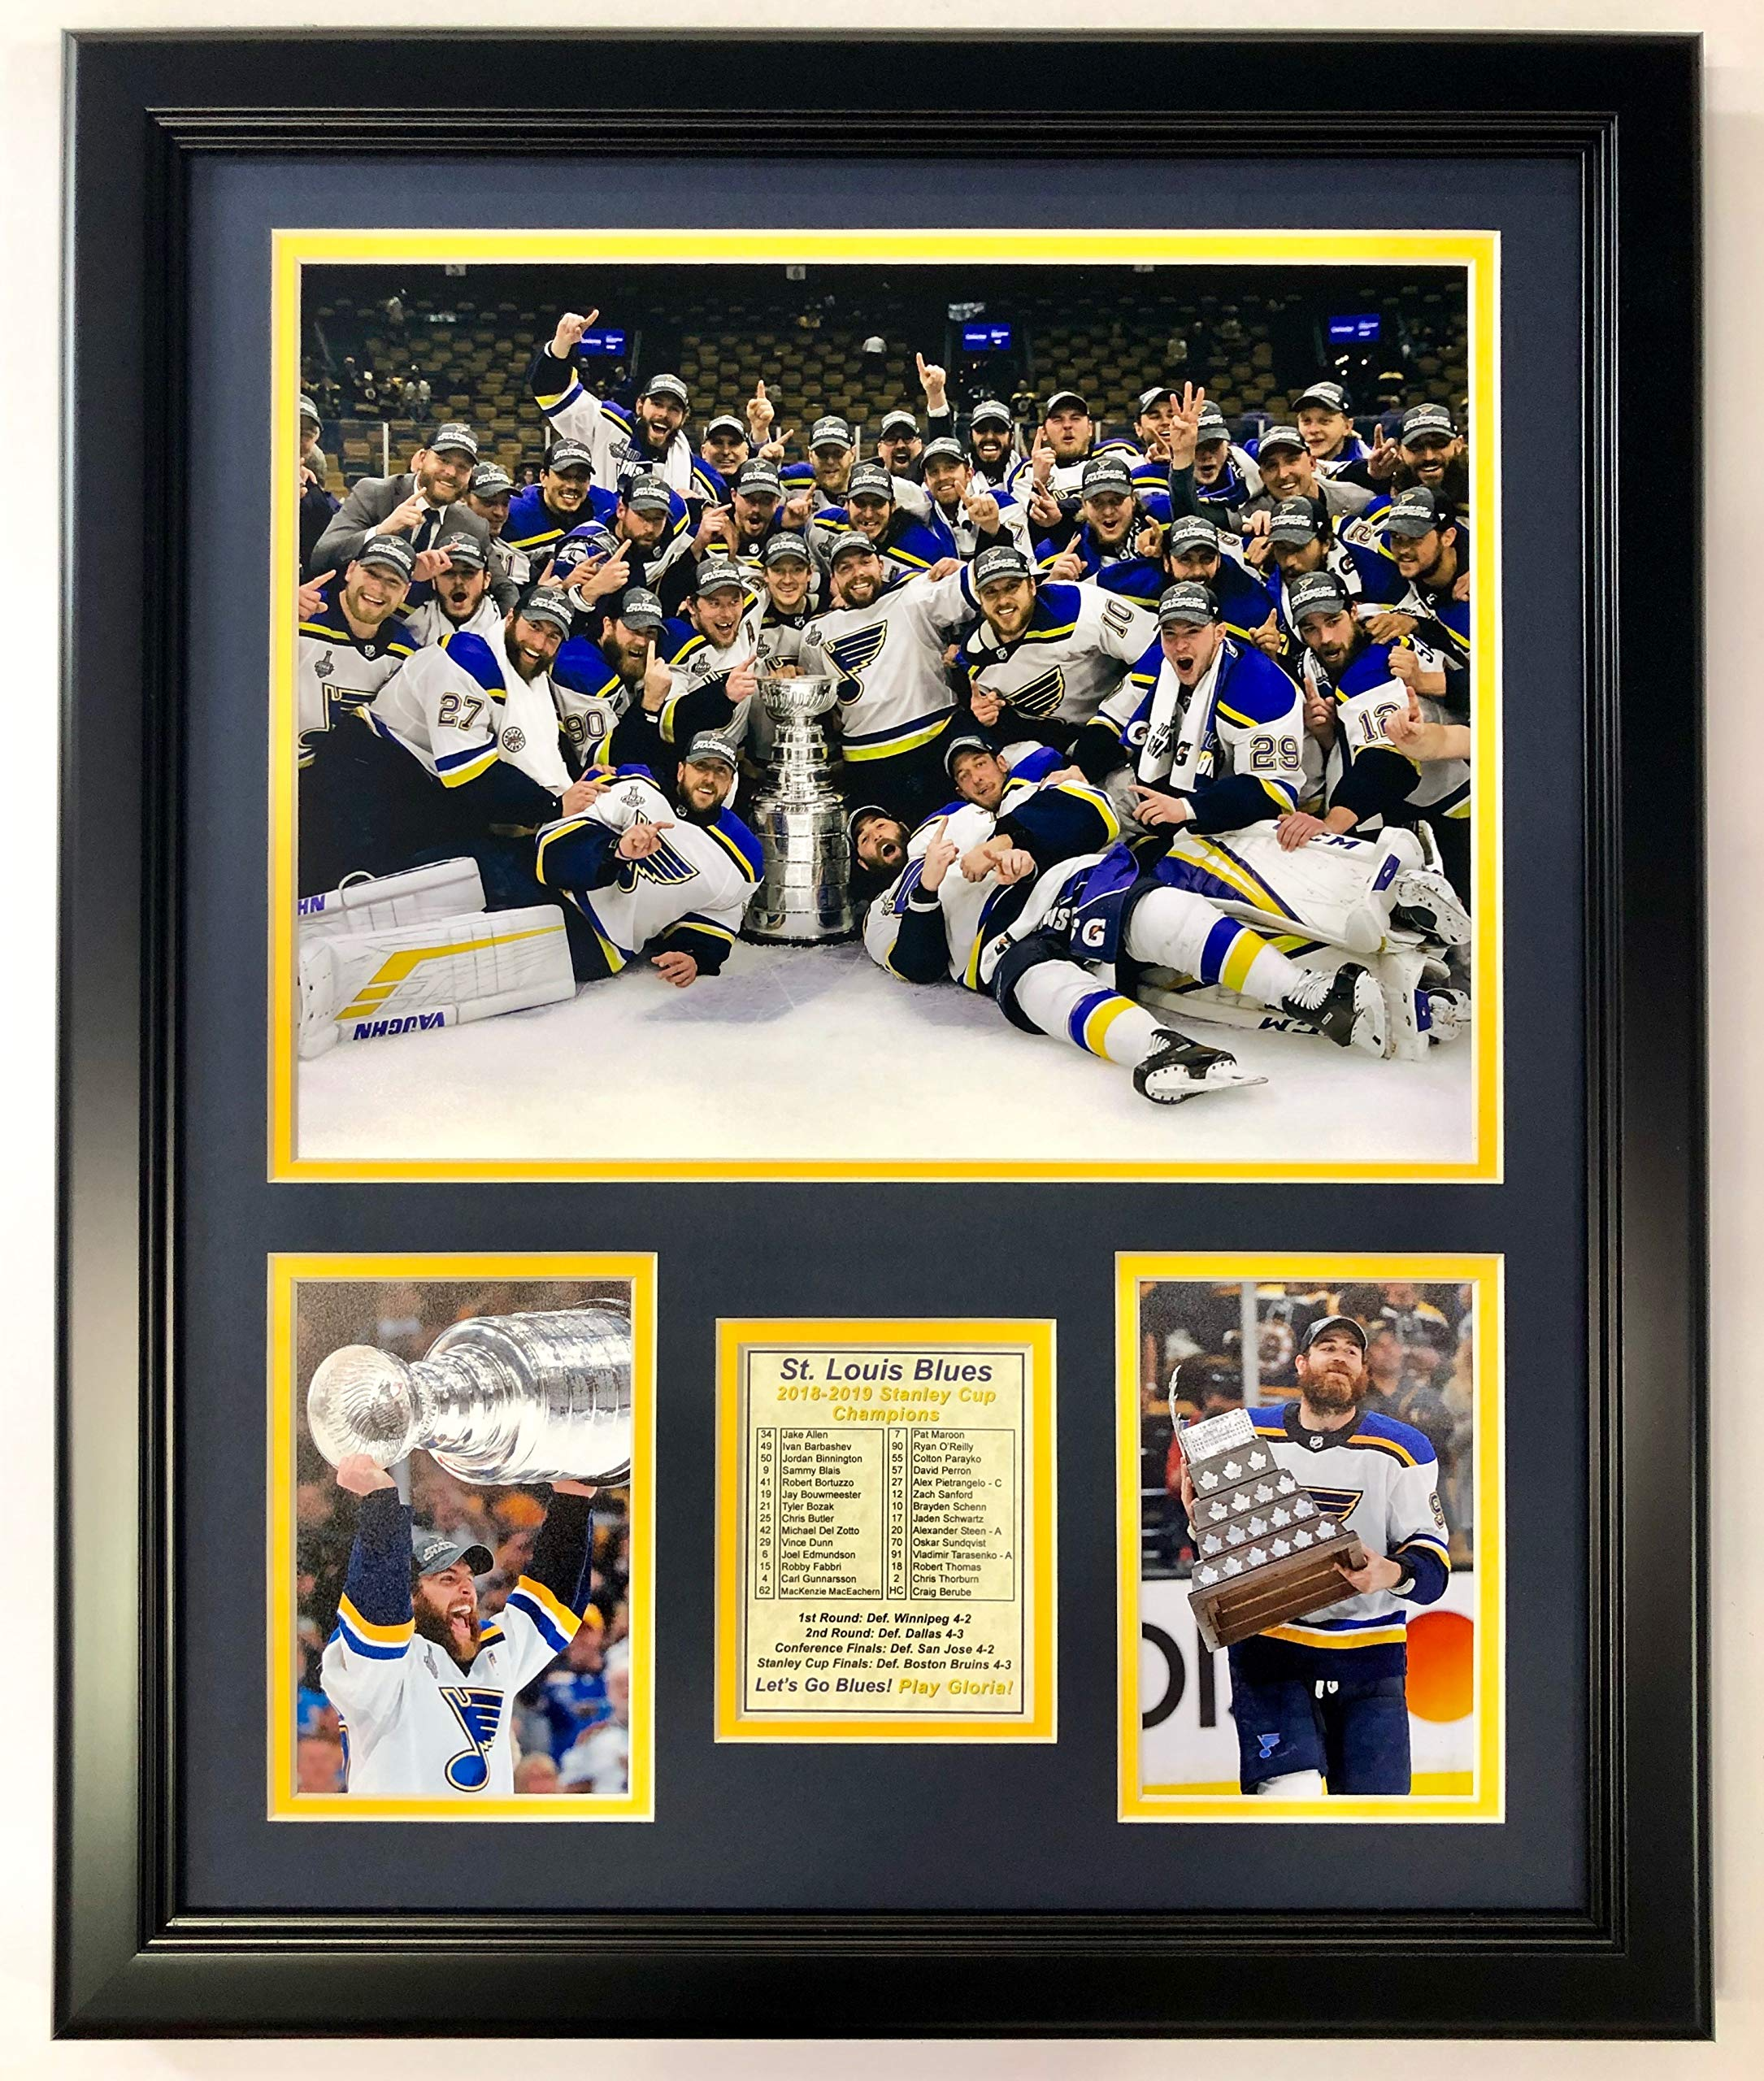 Legends Never Die St. Louis Blues - Stanley Cup Champions - Posed - 18'' x 22'' Framed Photo Collage, Inc.